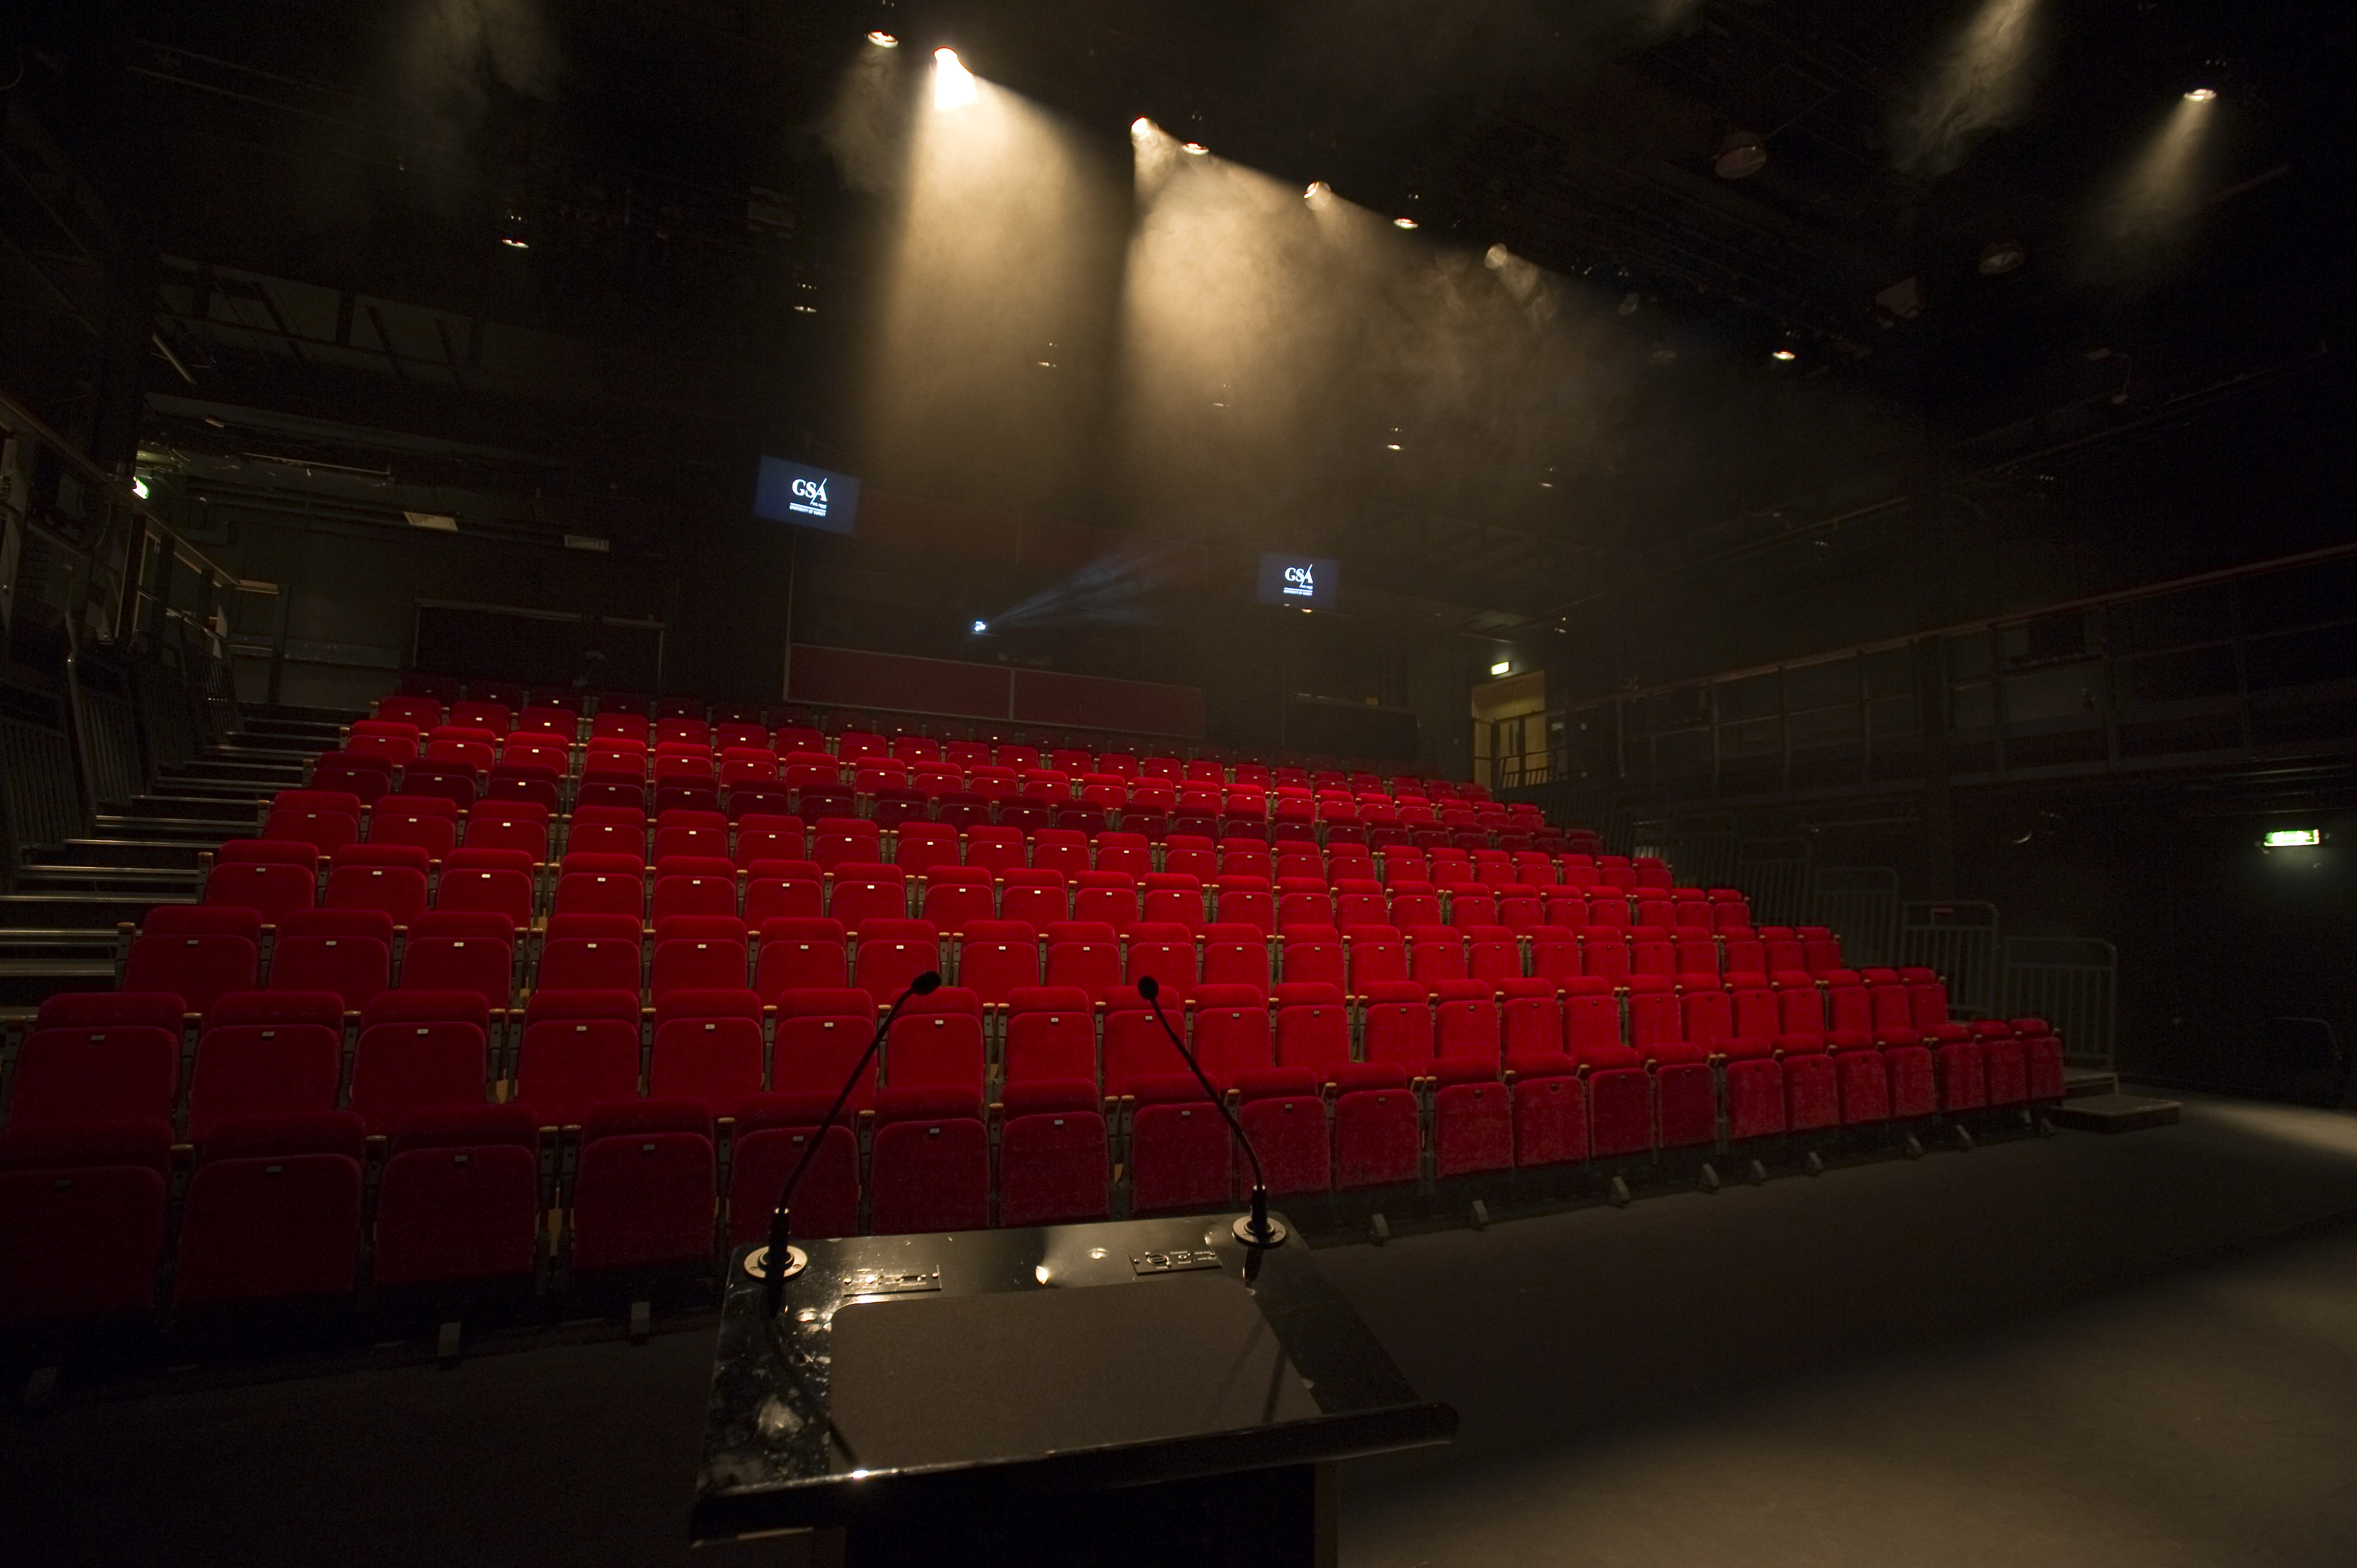 Theatre hall with red velvet seats and staging lights.